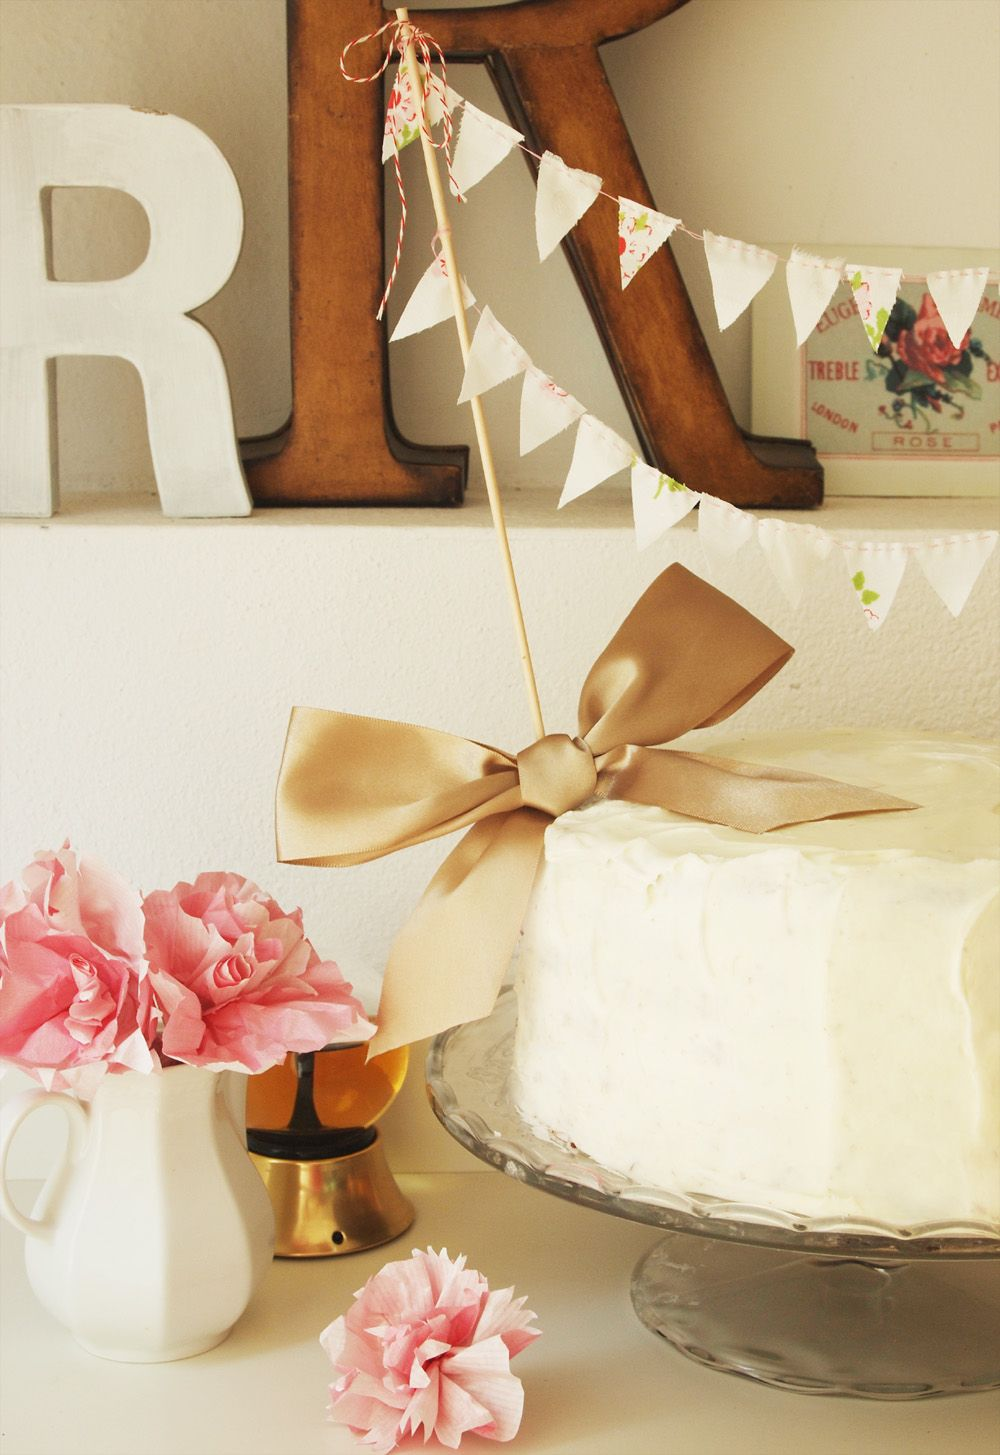 Creative miniature bunting cake toppers you can do yourself bunting cake topper with bow who says wedding cakes have to be expensive make kente bunting for a colorful cake solutioingenieria Choice Image